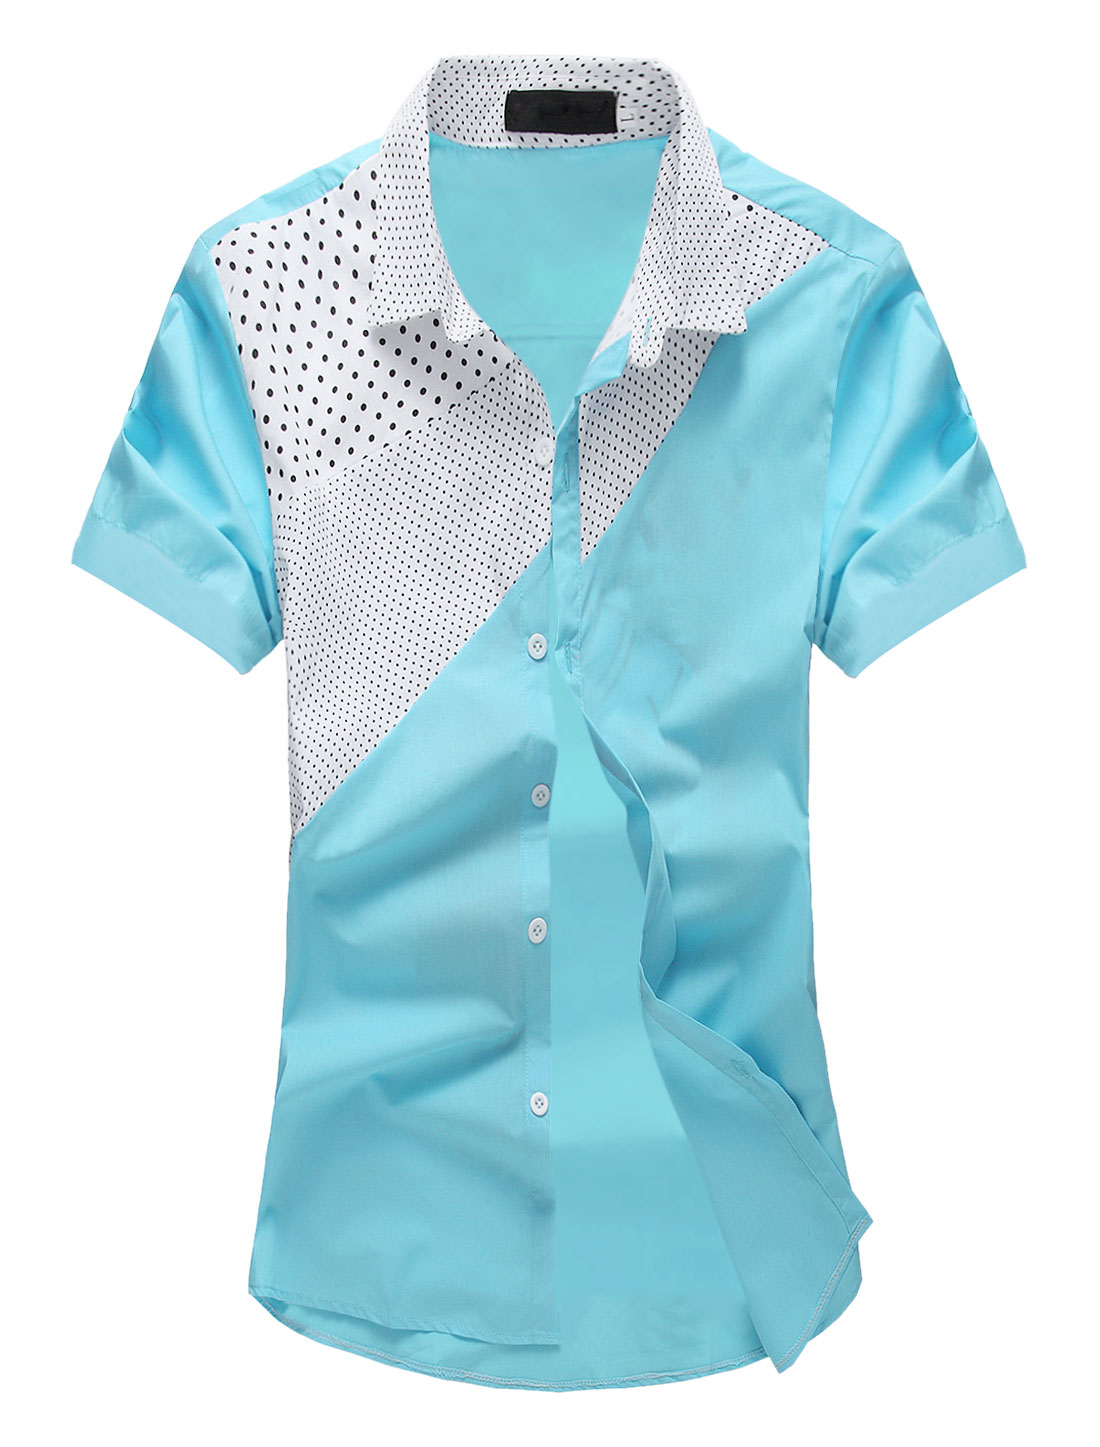 Men Dots Prints Color Block Button Closure Casual Shirt Sky Blue M